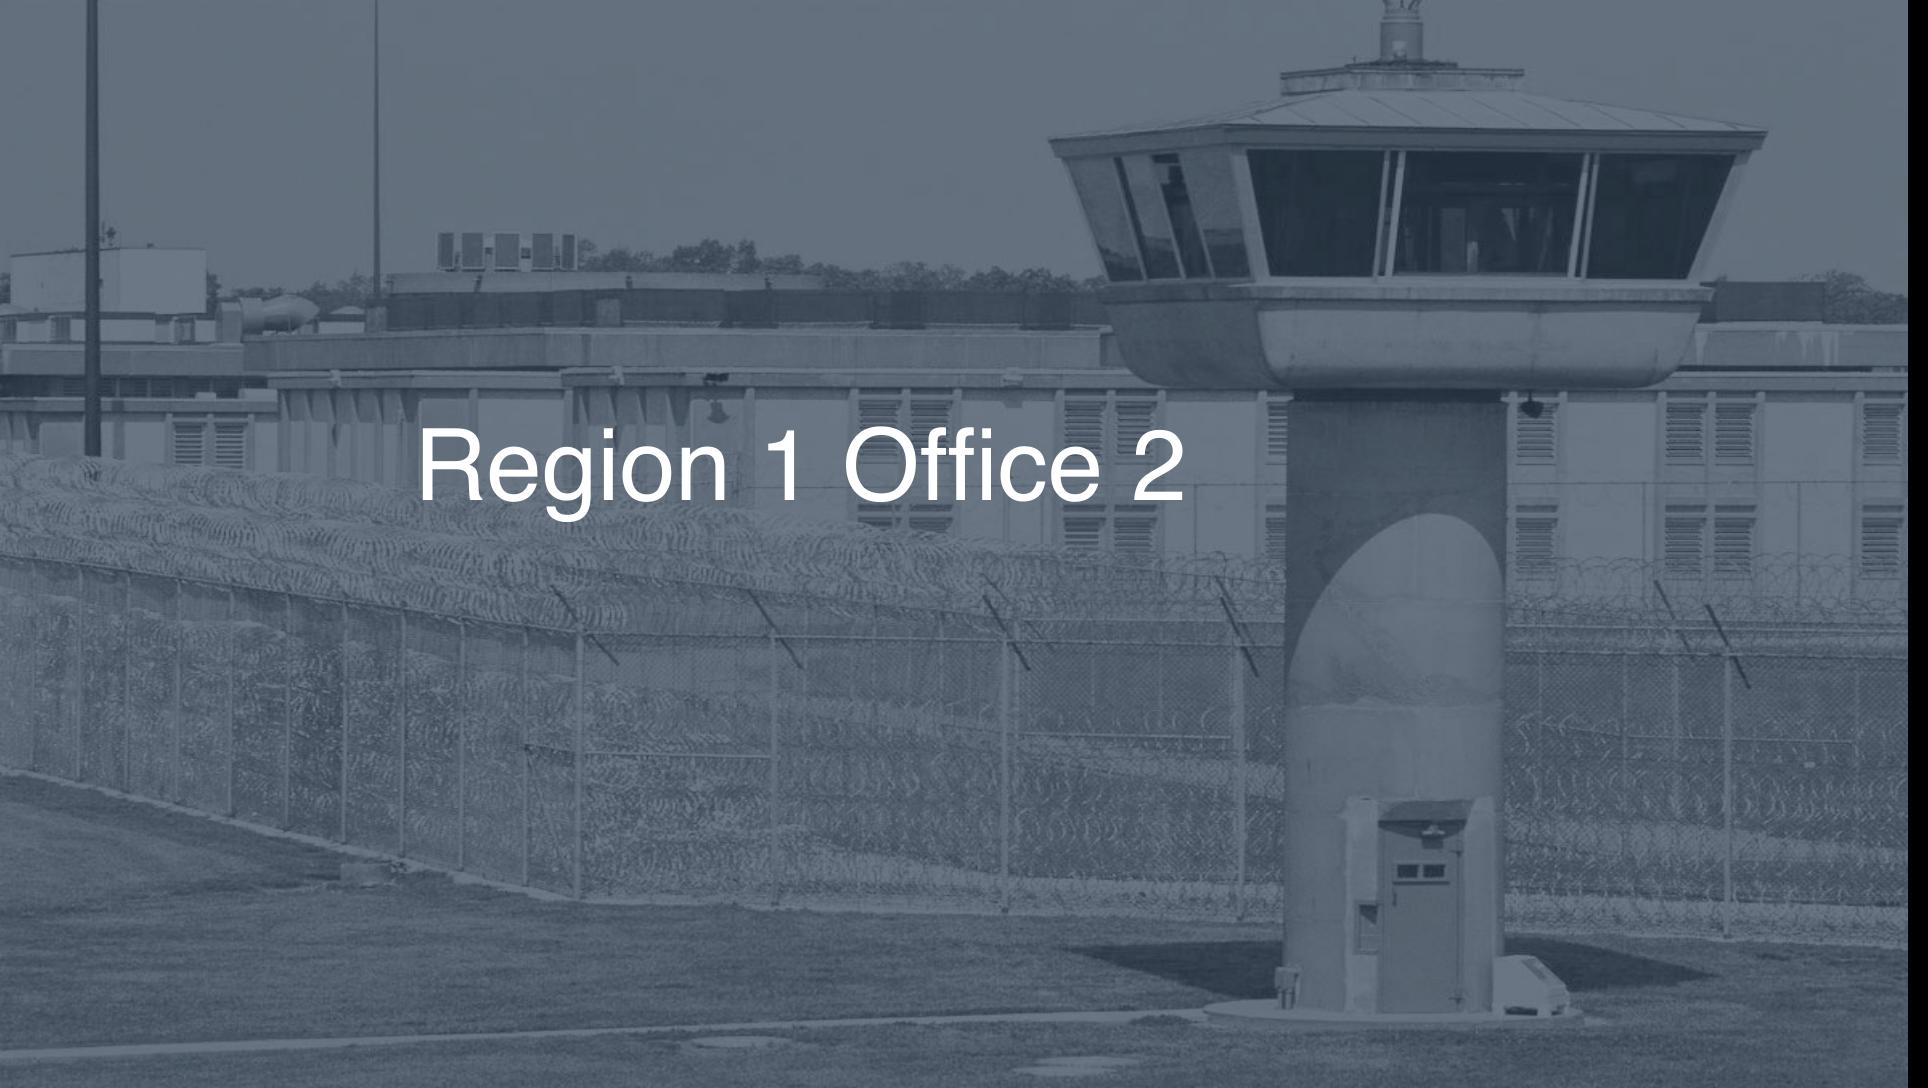 Region 1 Office correctional facility picture